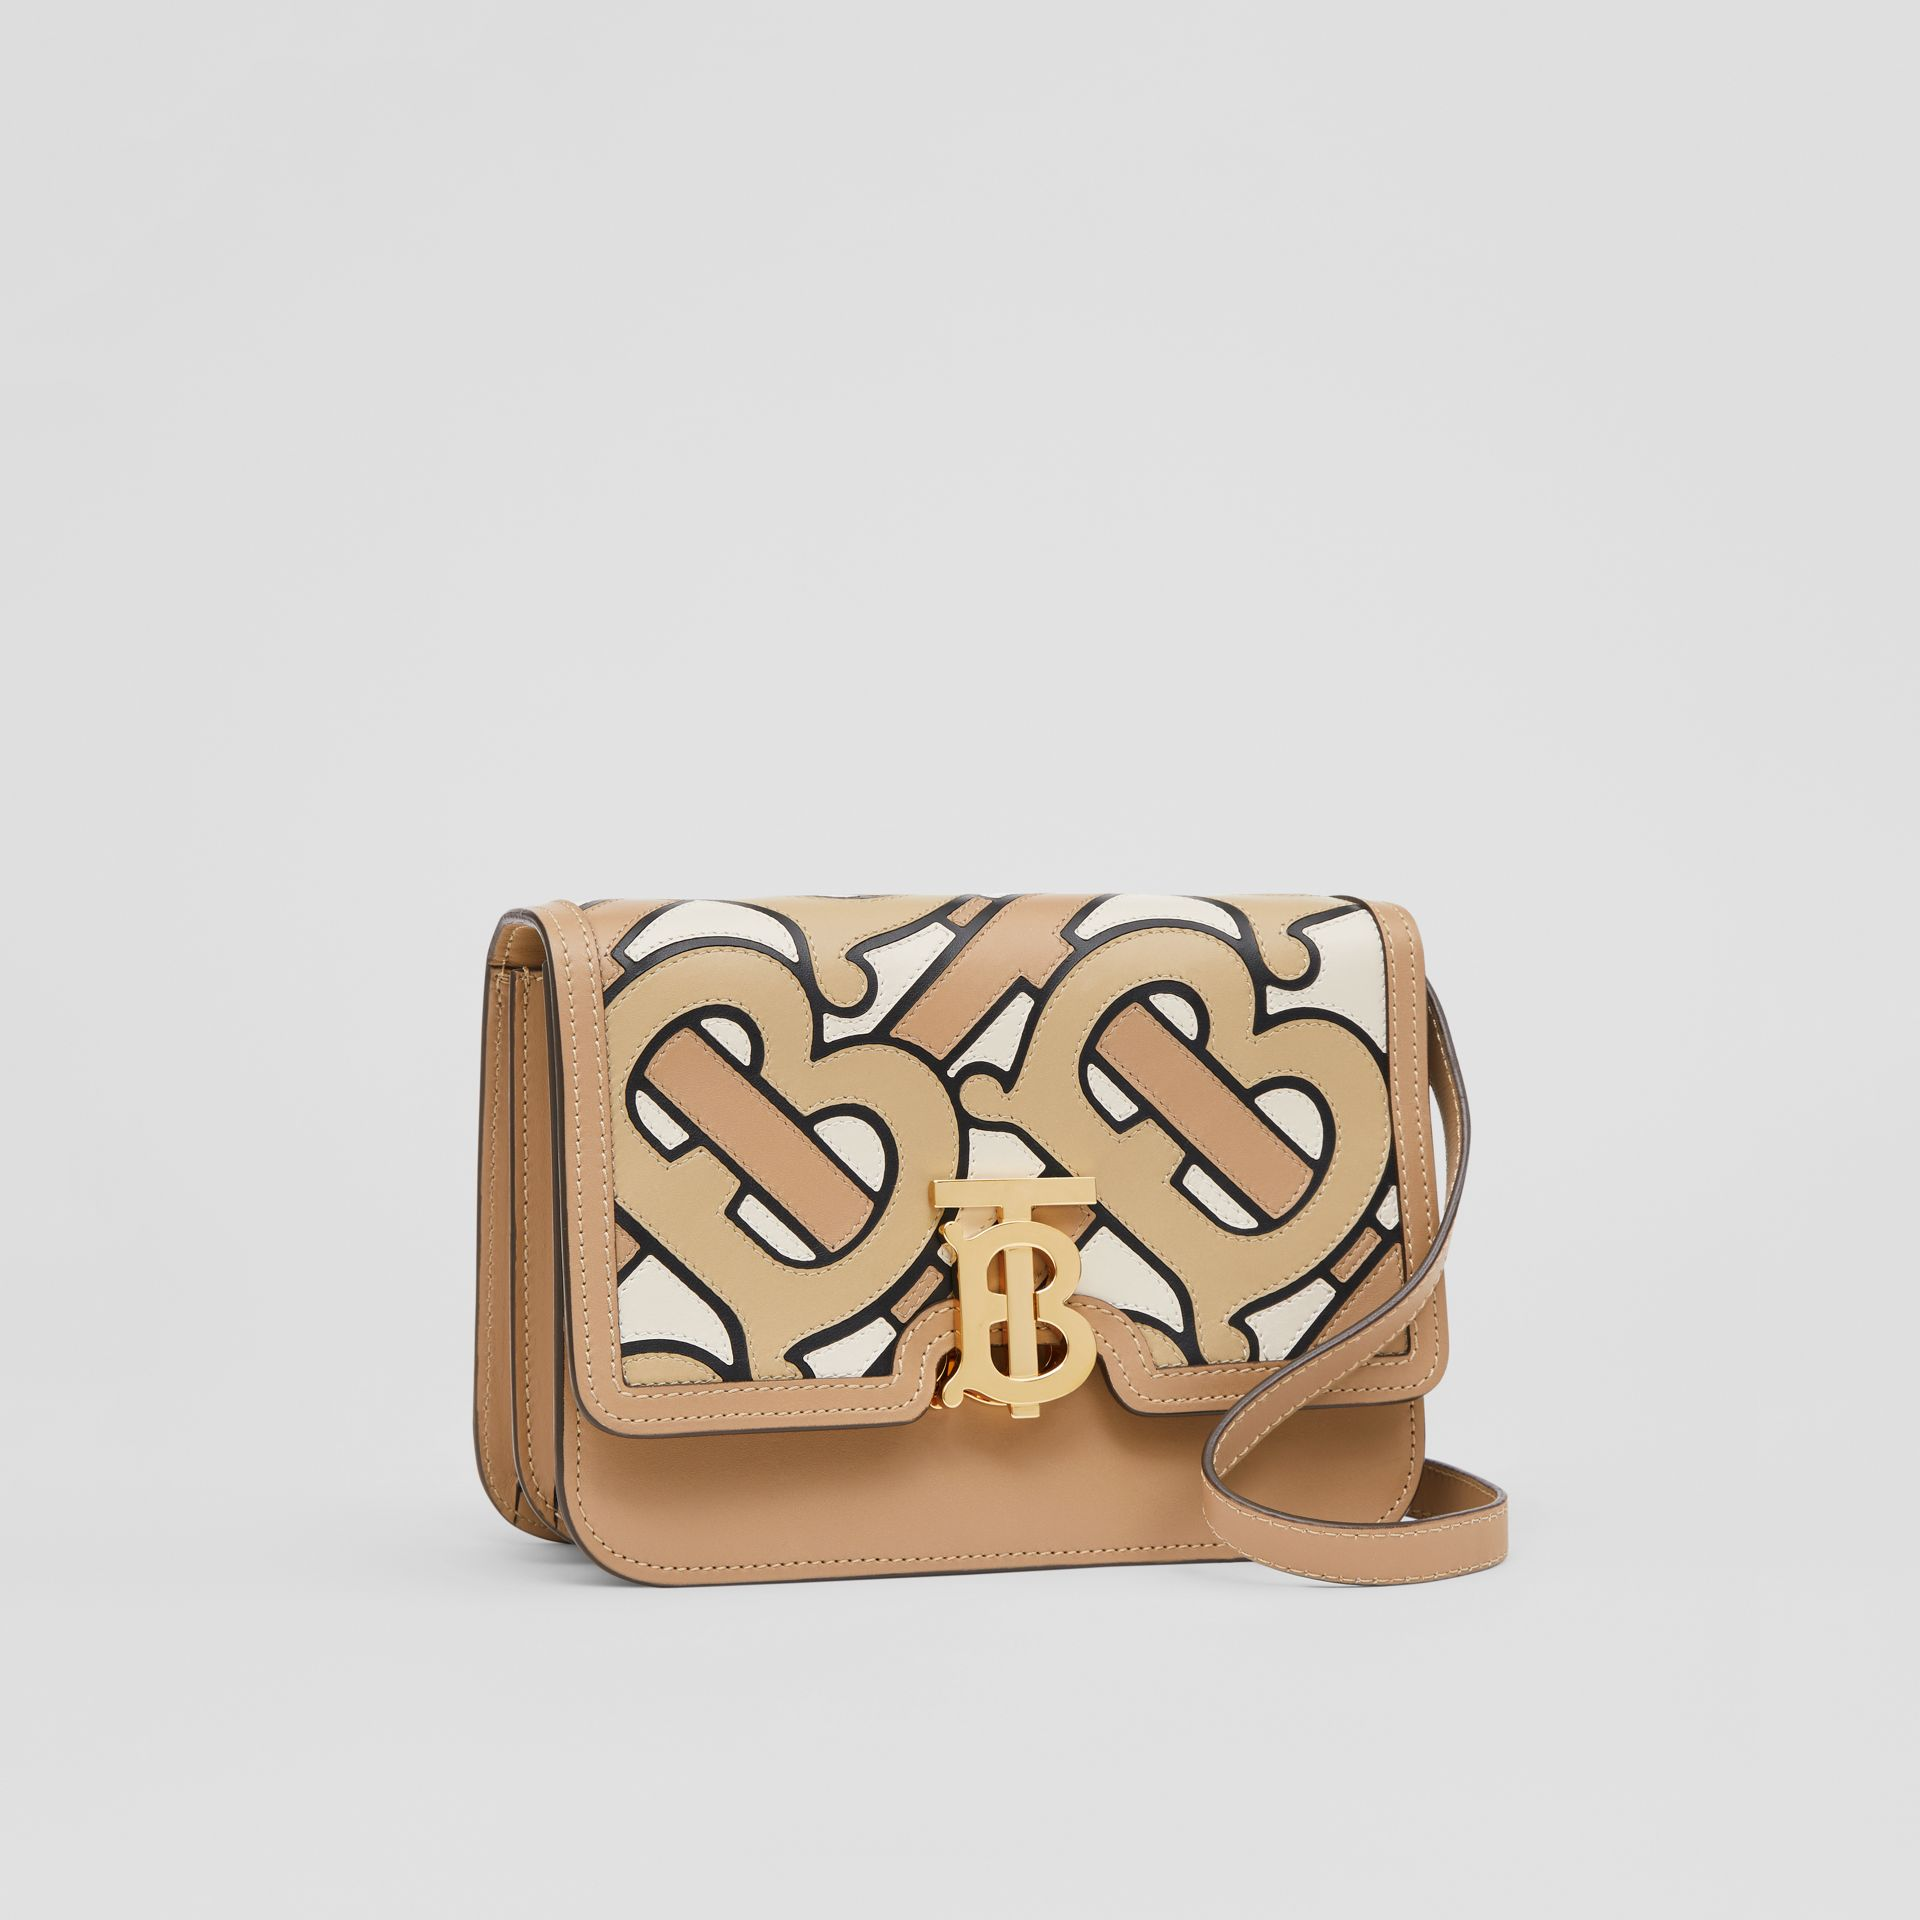 Small Monogram Intarsia Leather TB Bag in Beige - Women | Burberry - gallery image 6